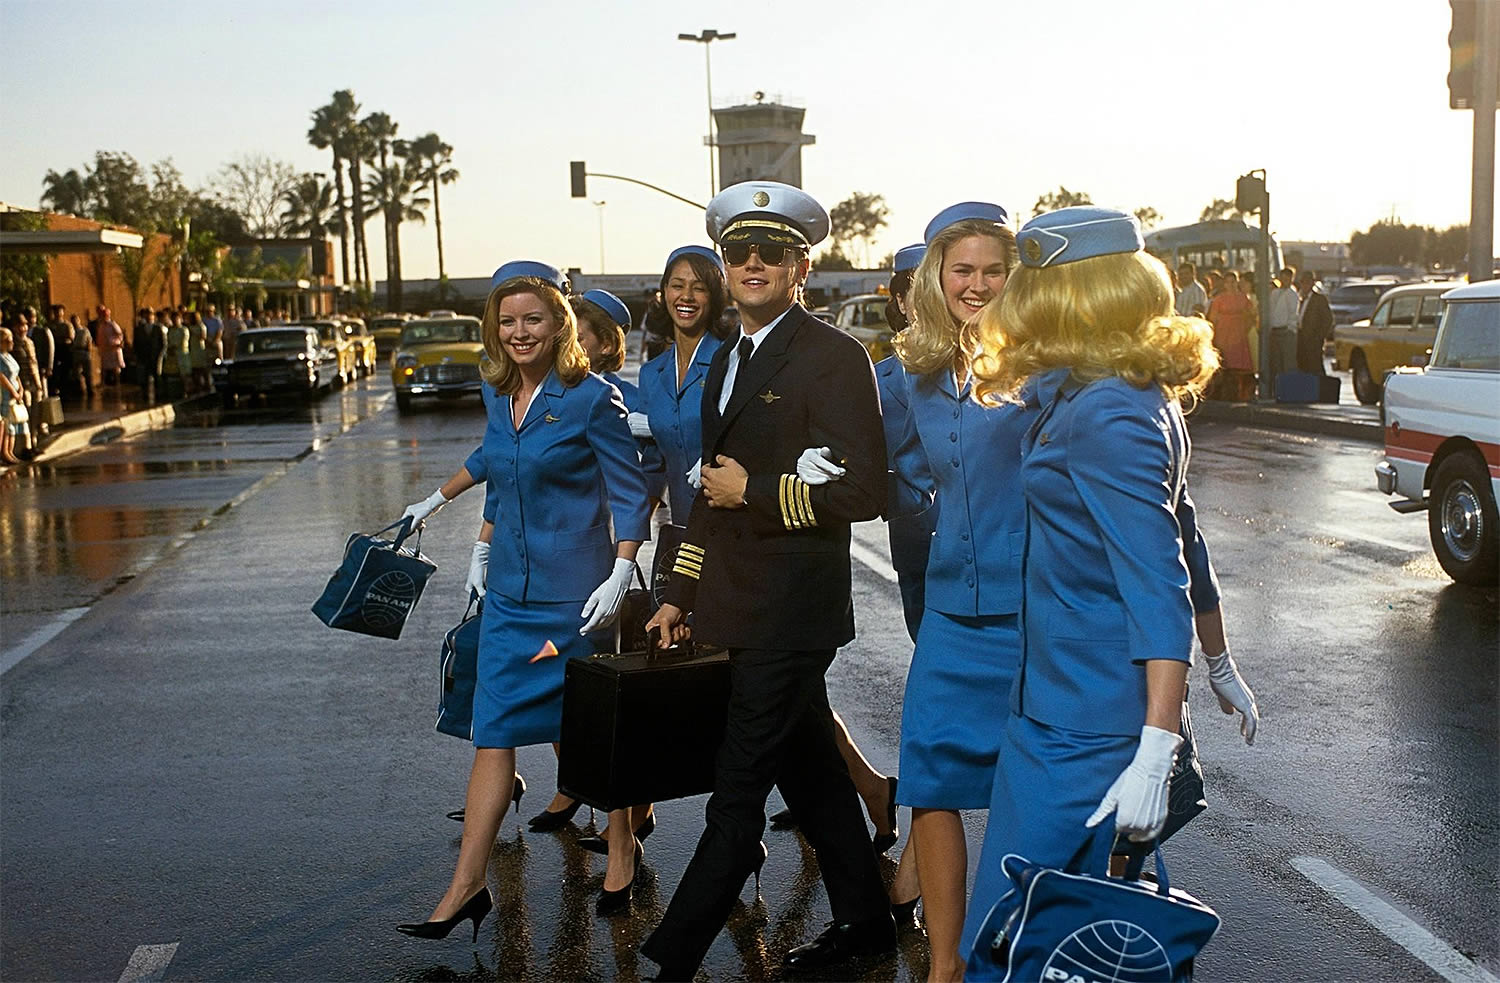 leonardo dicaprio (pilot) walking with ladies, airport, catch me if you can